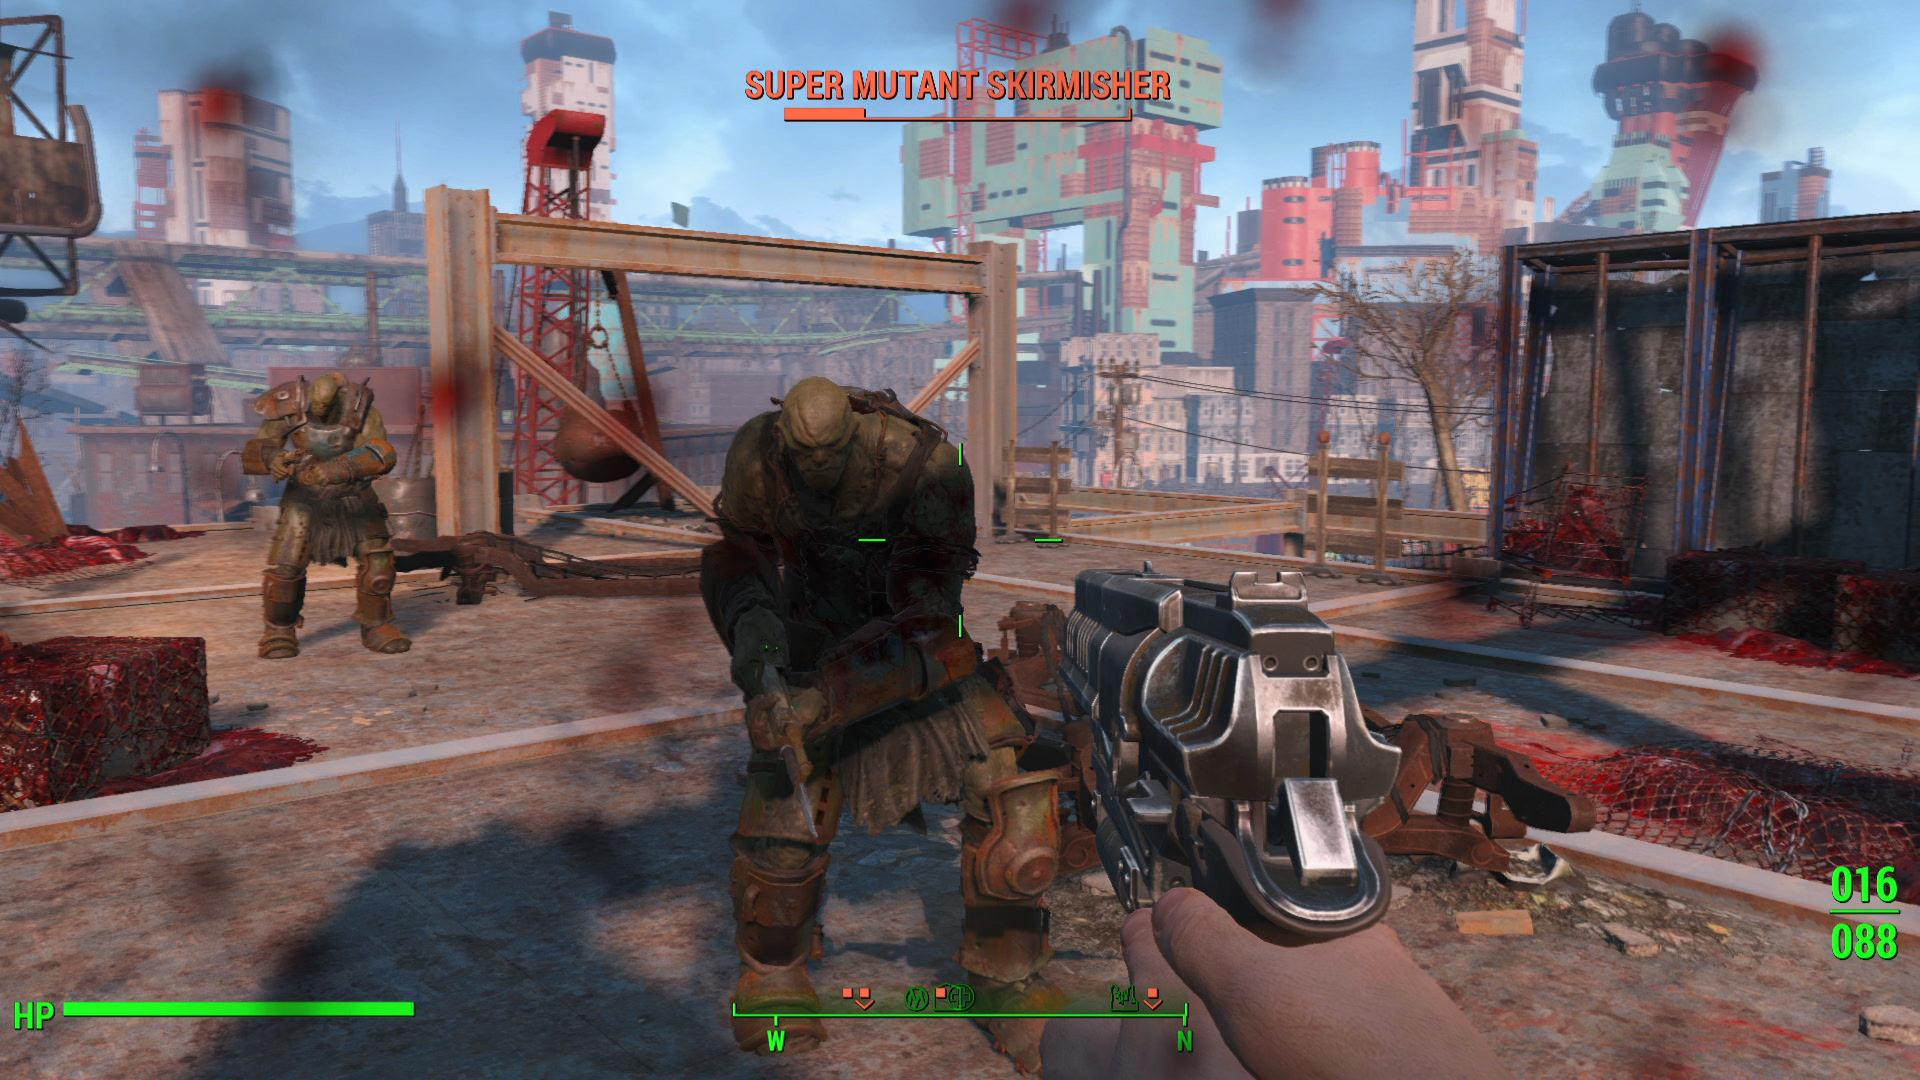 Super-Mutant-Skirmisher-Fallout-4